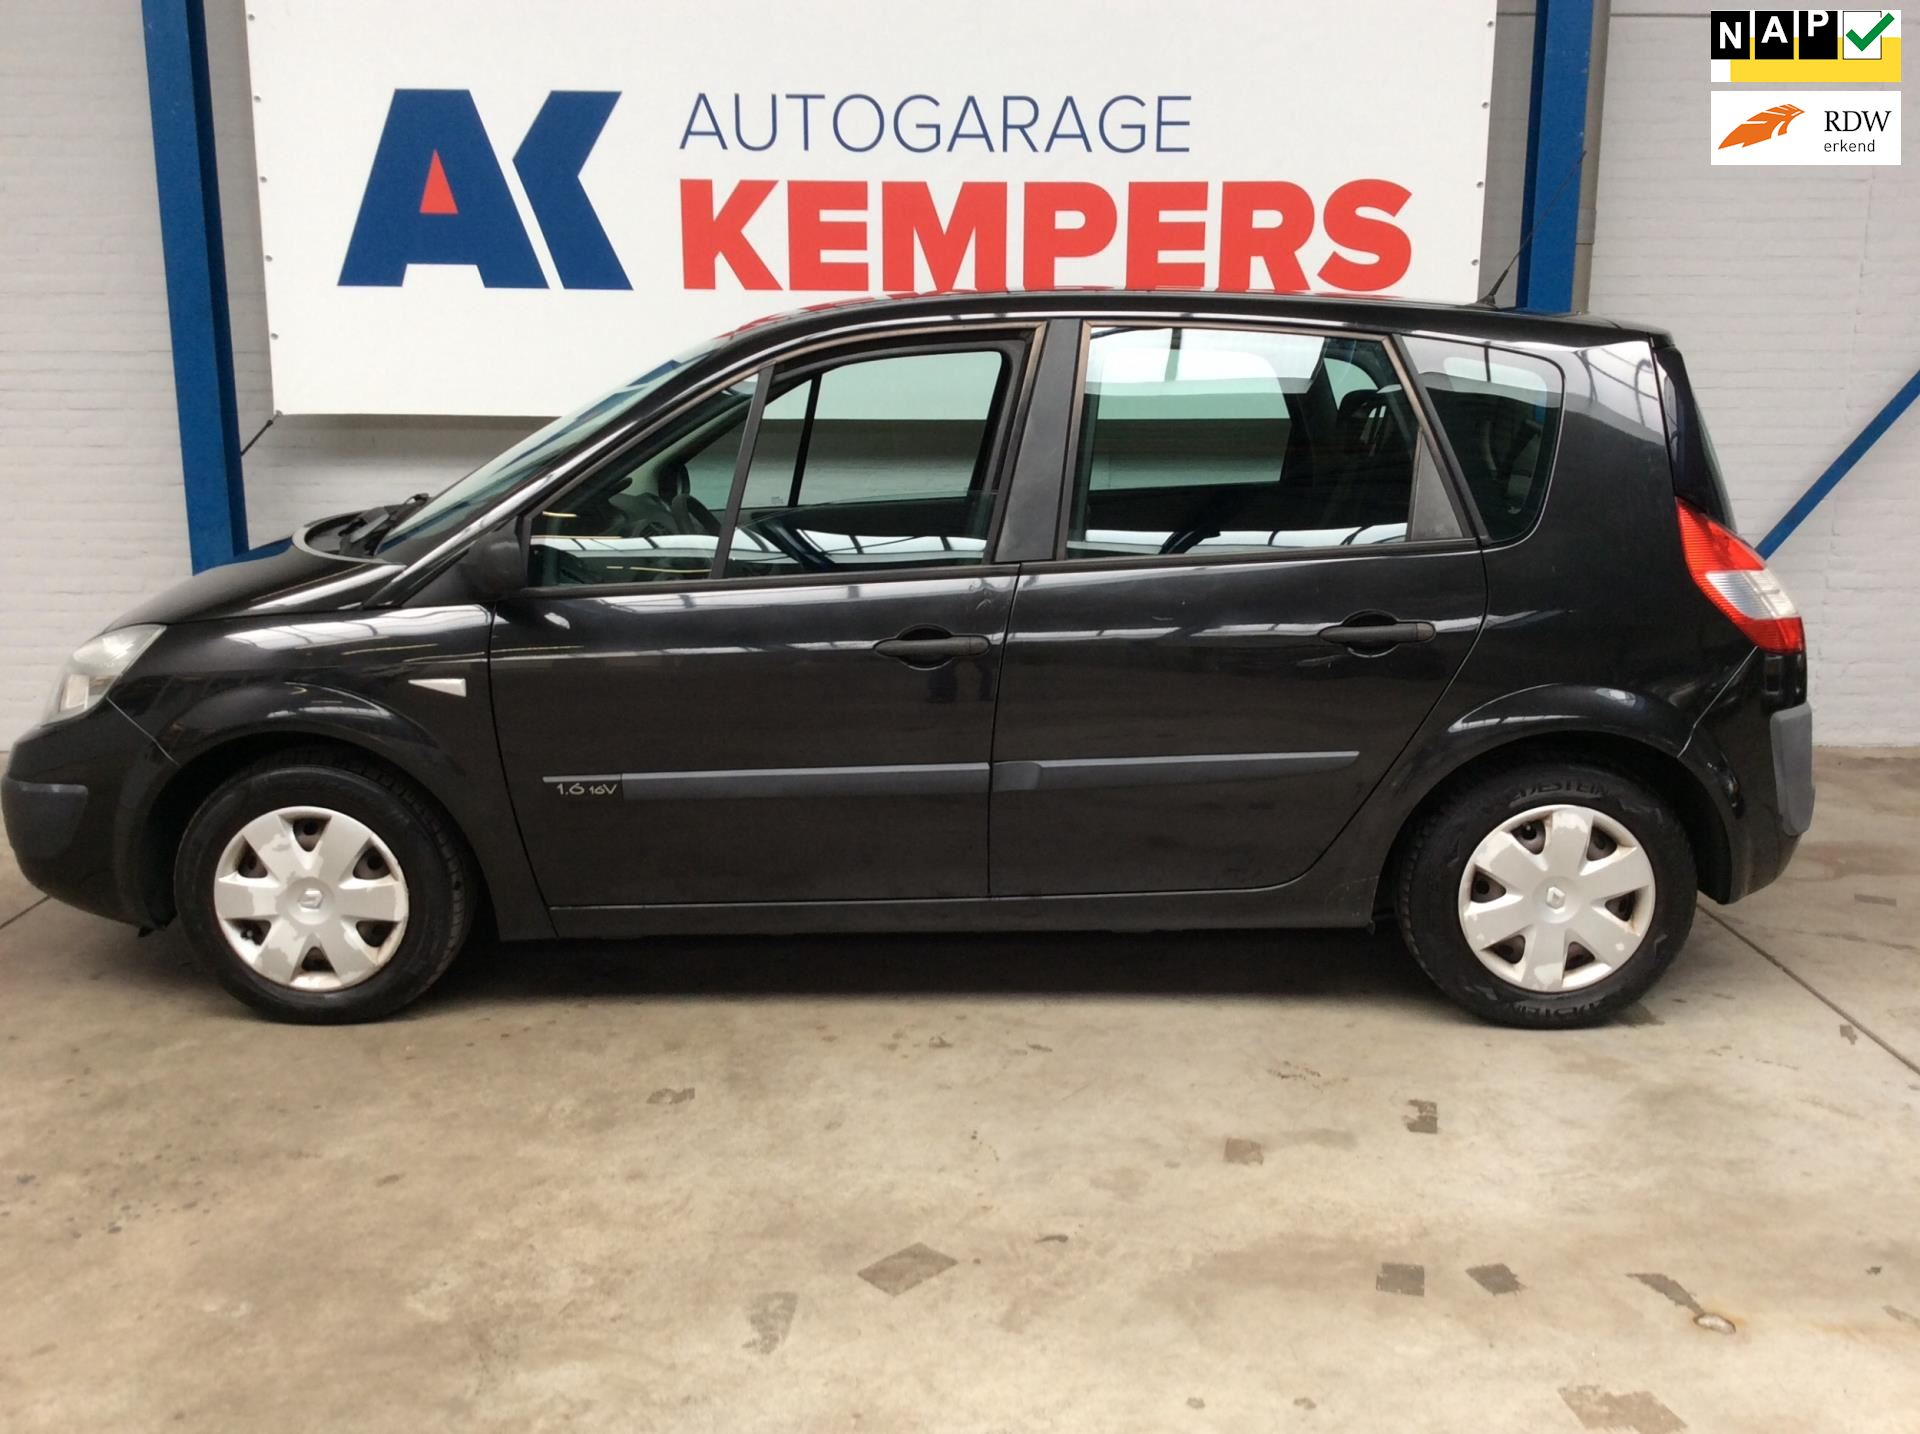 Renault Scénic occasion - Autogarage Kempers